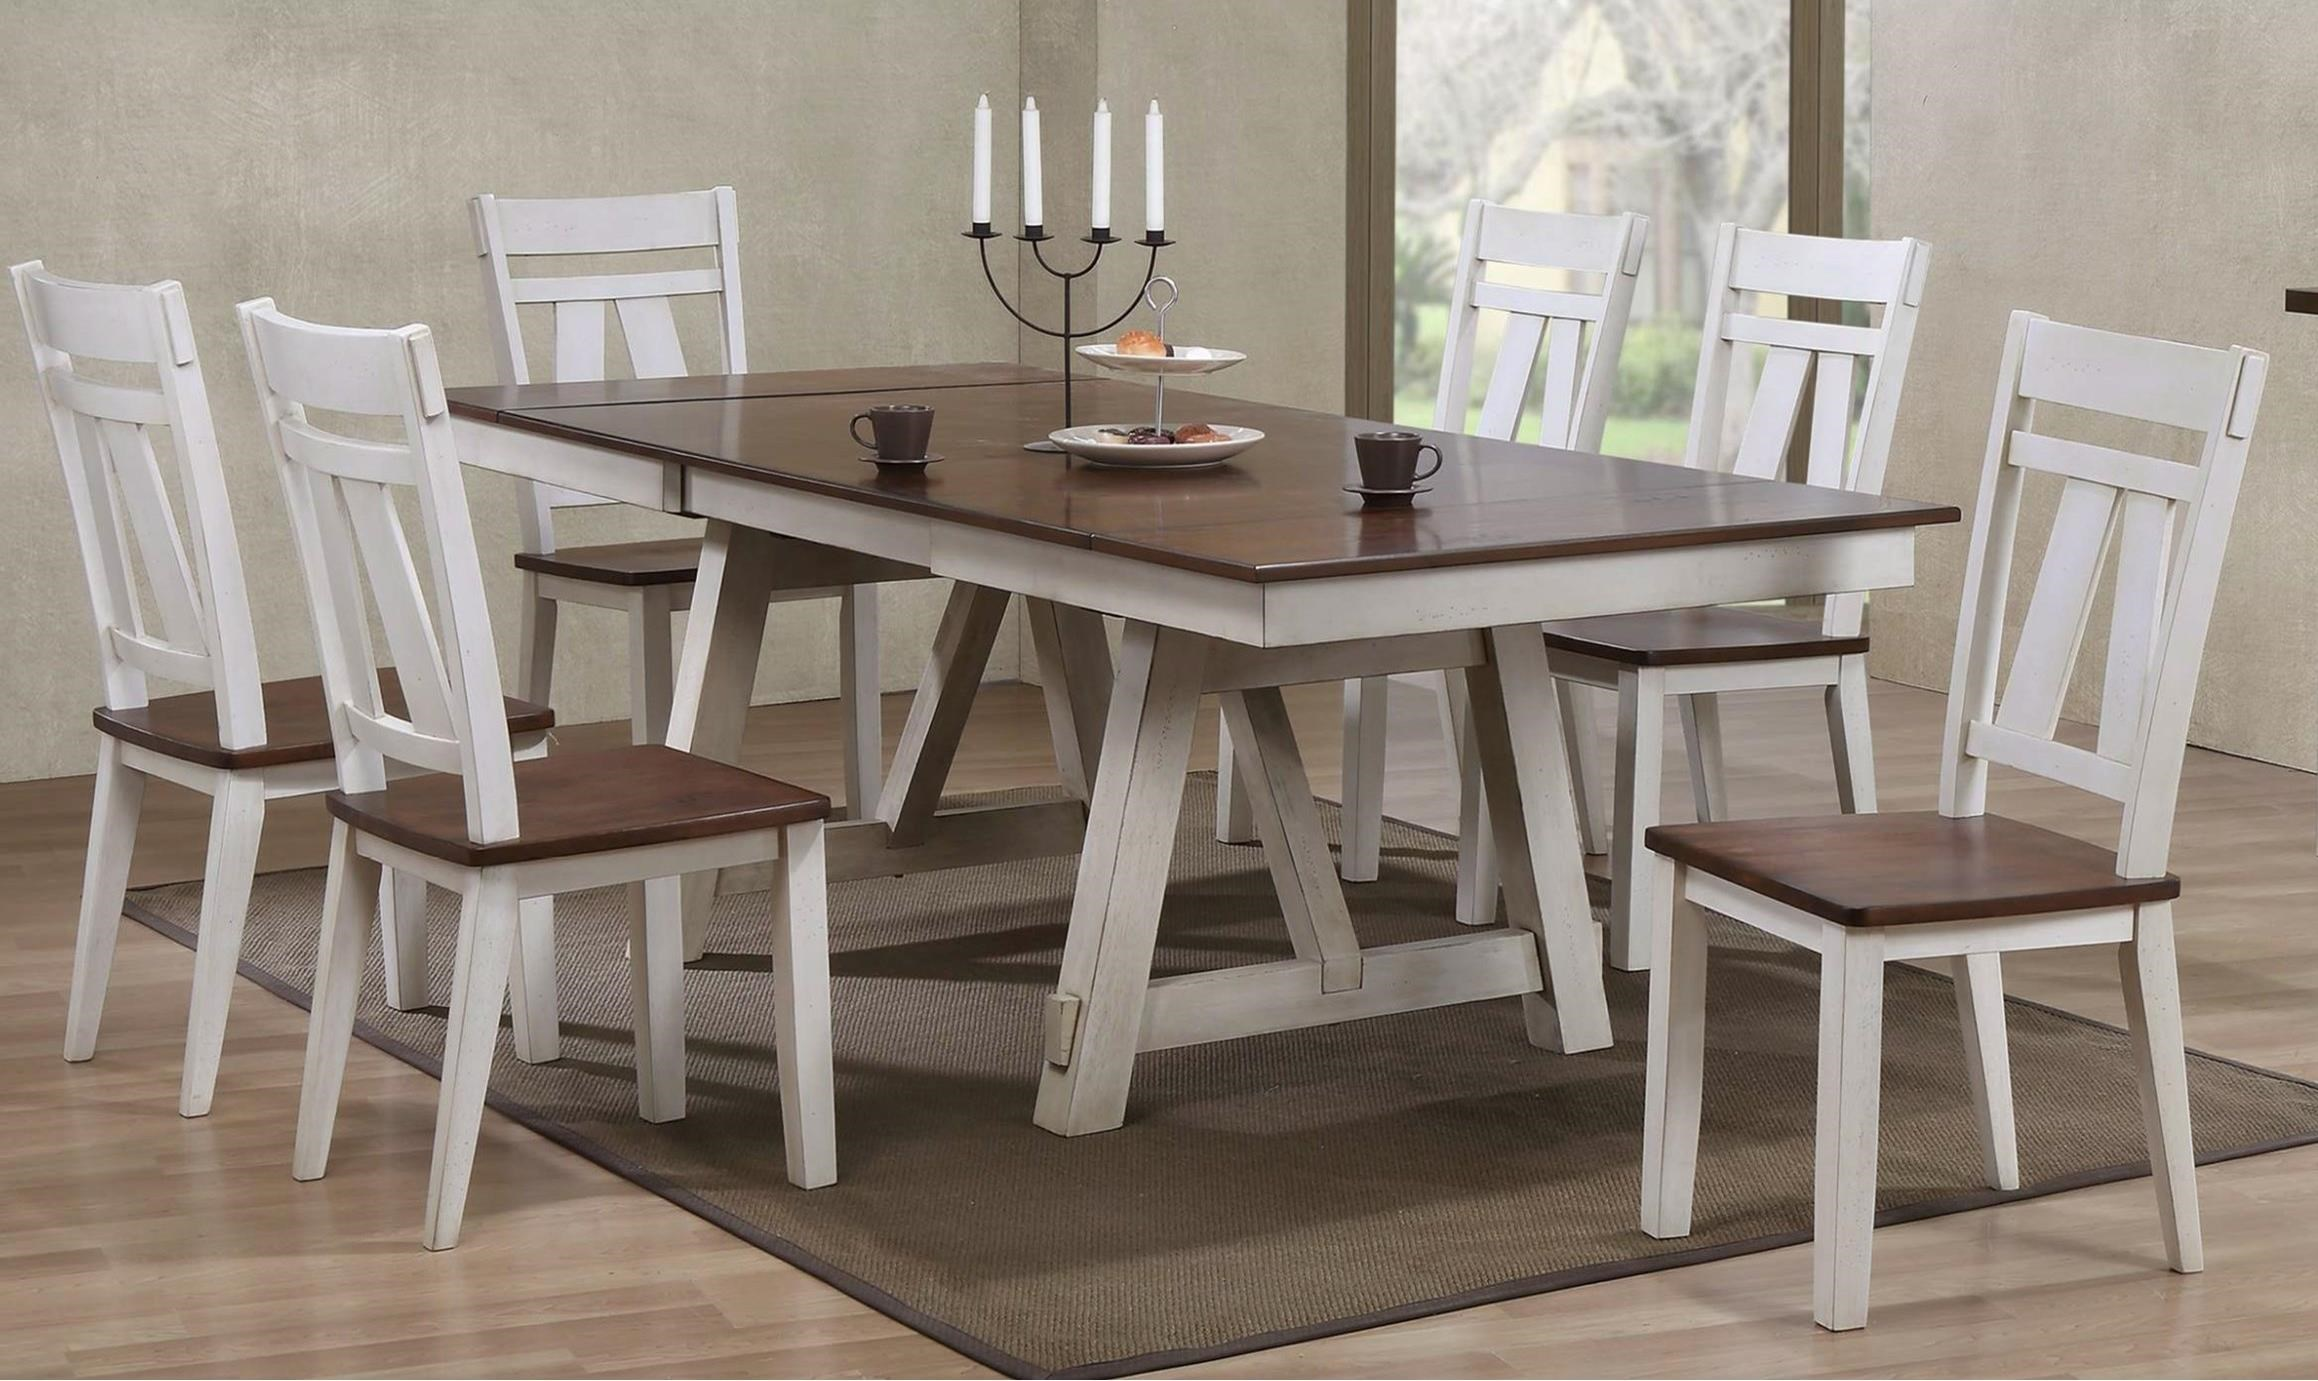 Bernards Winslow 7 Piece Two Tone Refectory Table Set Royal Furniture Dining 7 Or More